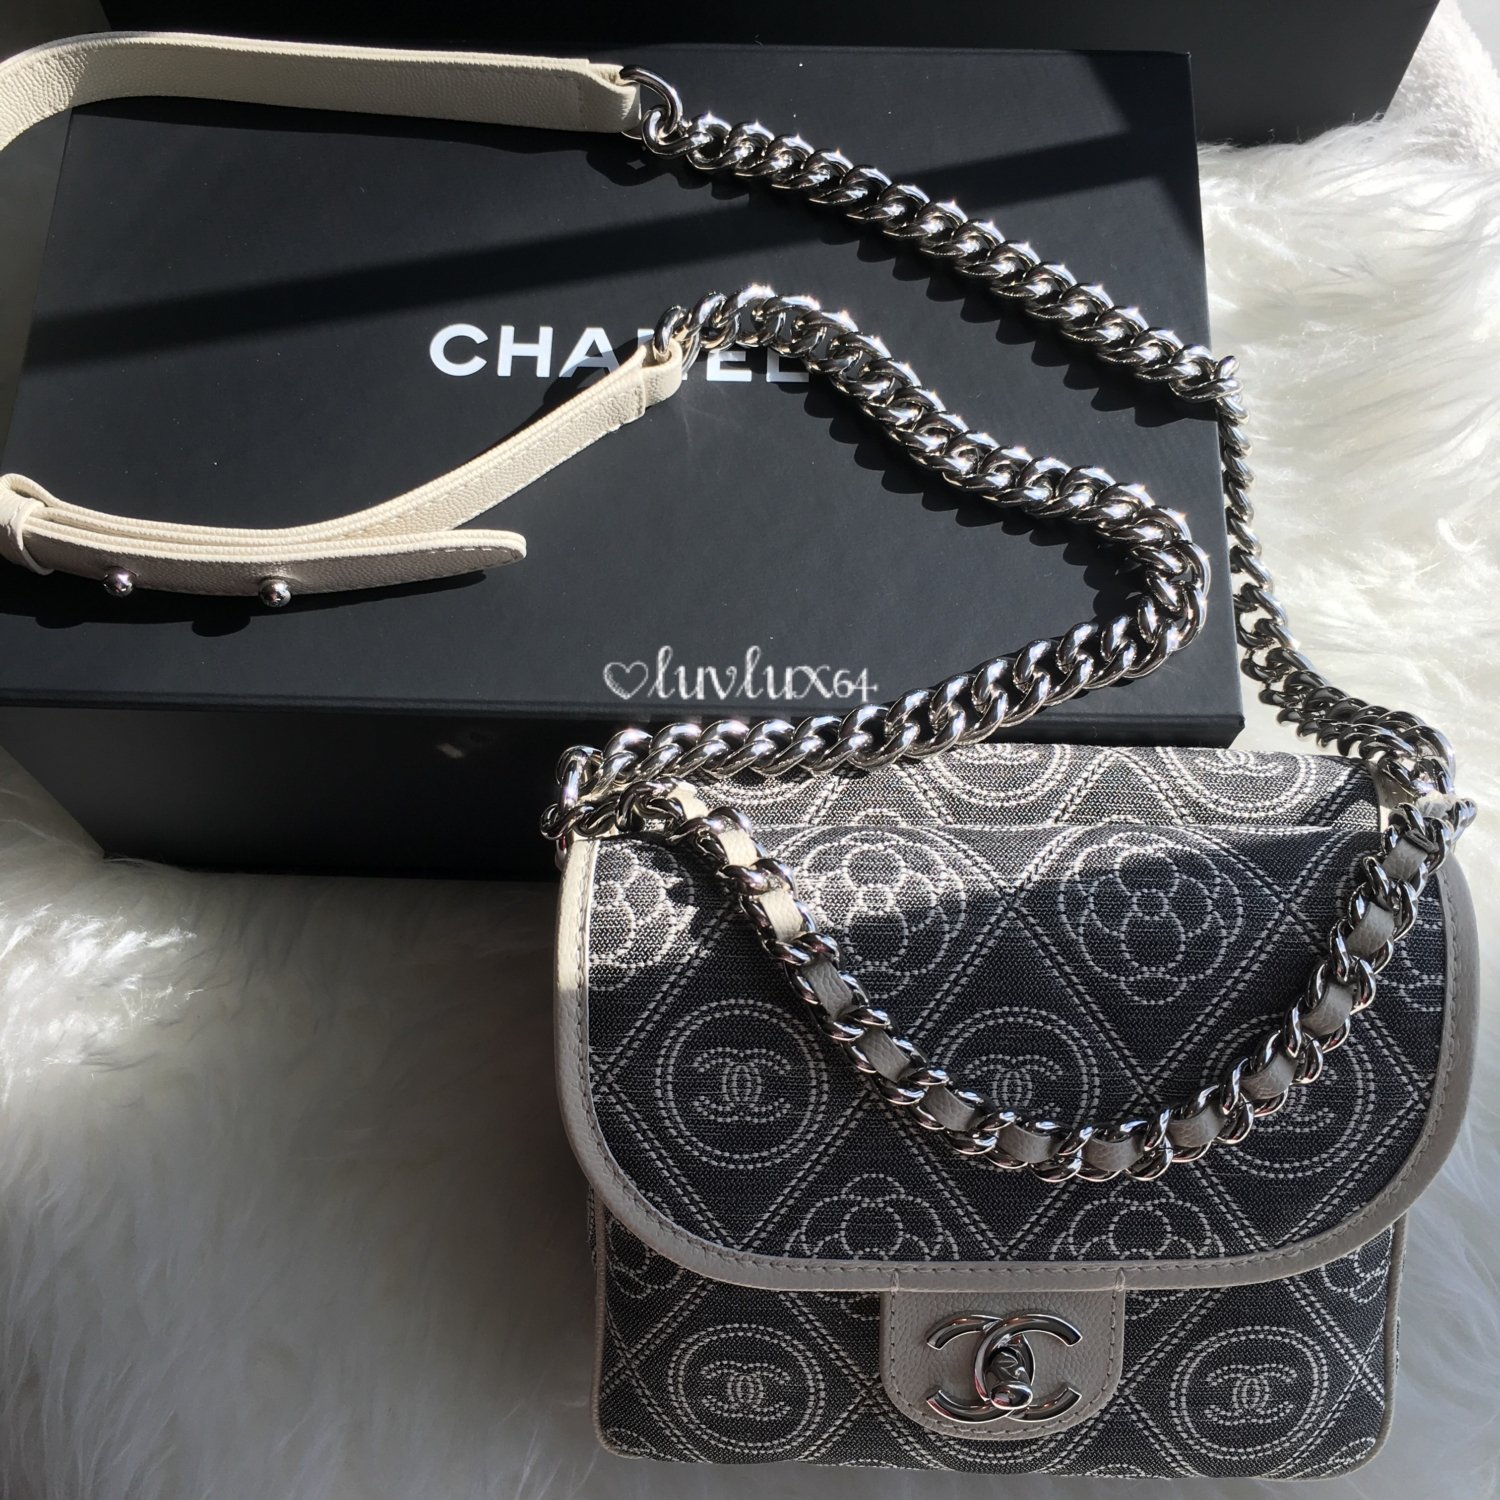 Chanel-Camellia-Logo-Square-Bag-2